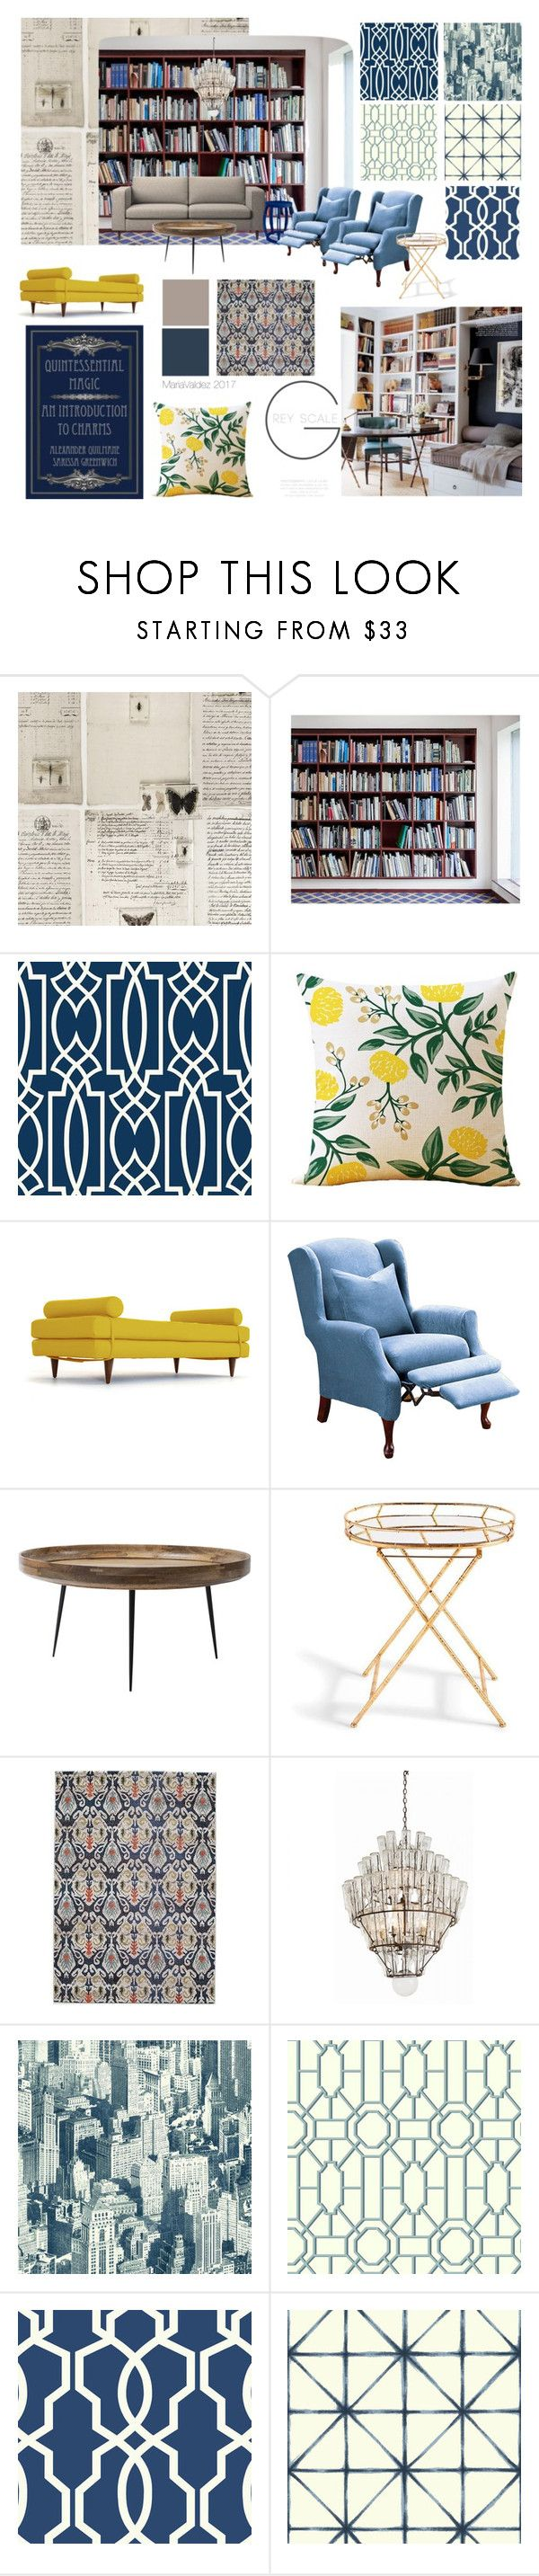 """MB:4"" by maria-jose-valdez on Polyvore featuring interior, interiors, interior design, home, home decor, interior decorating, WALL, York Wallcoverings, Joybird and Bungalow 5"